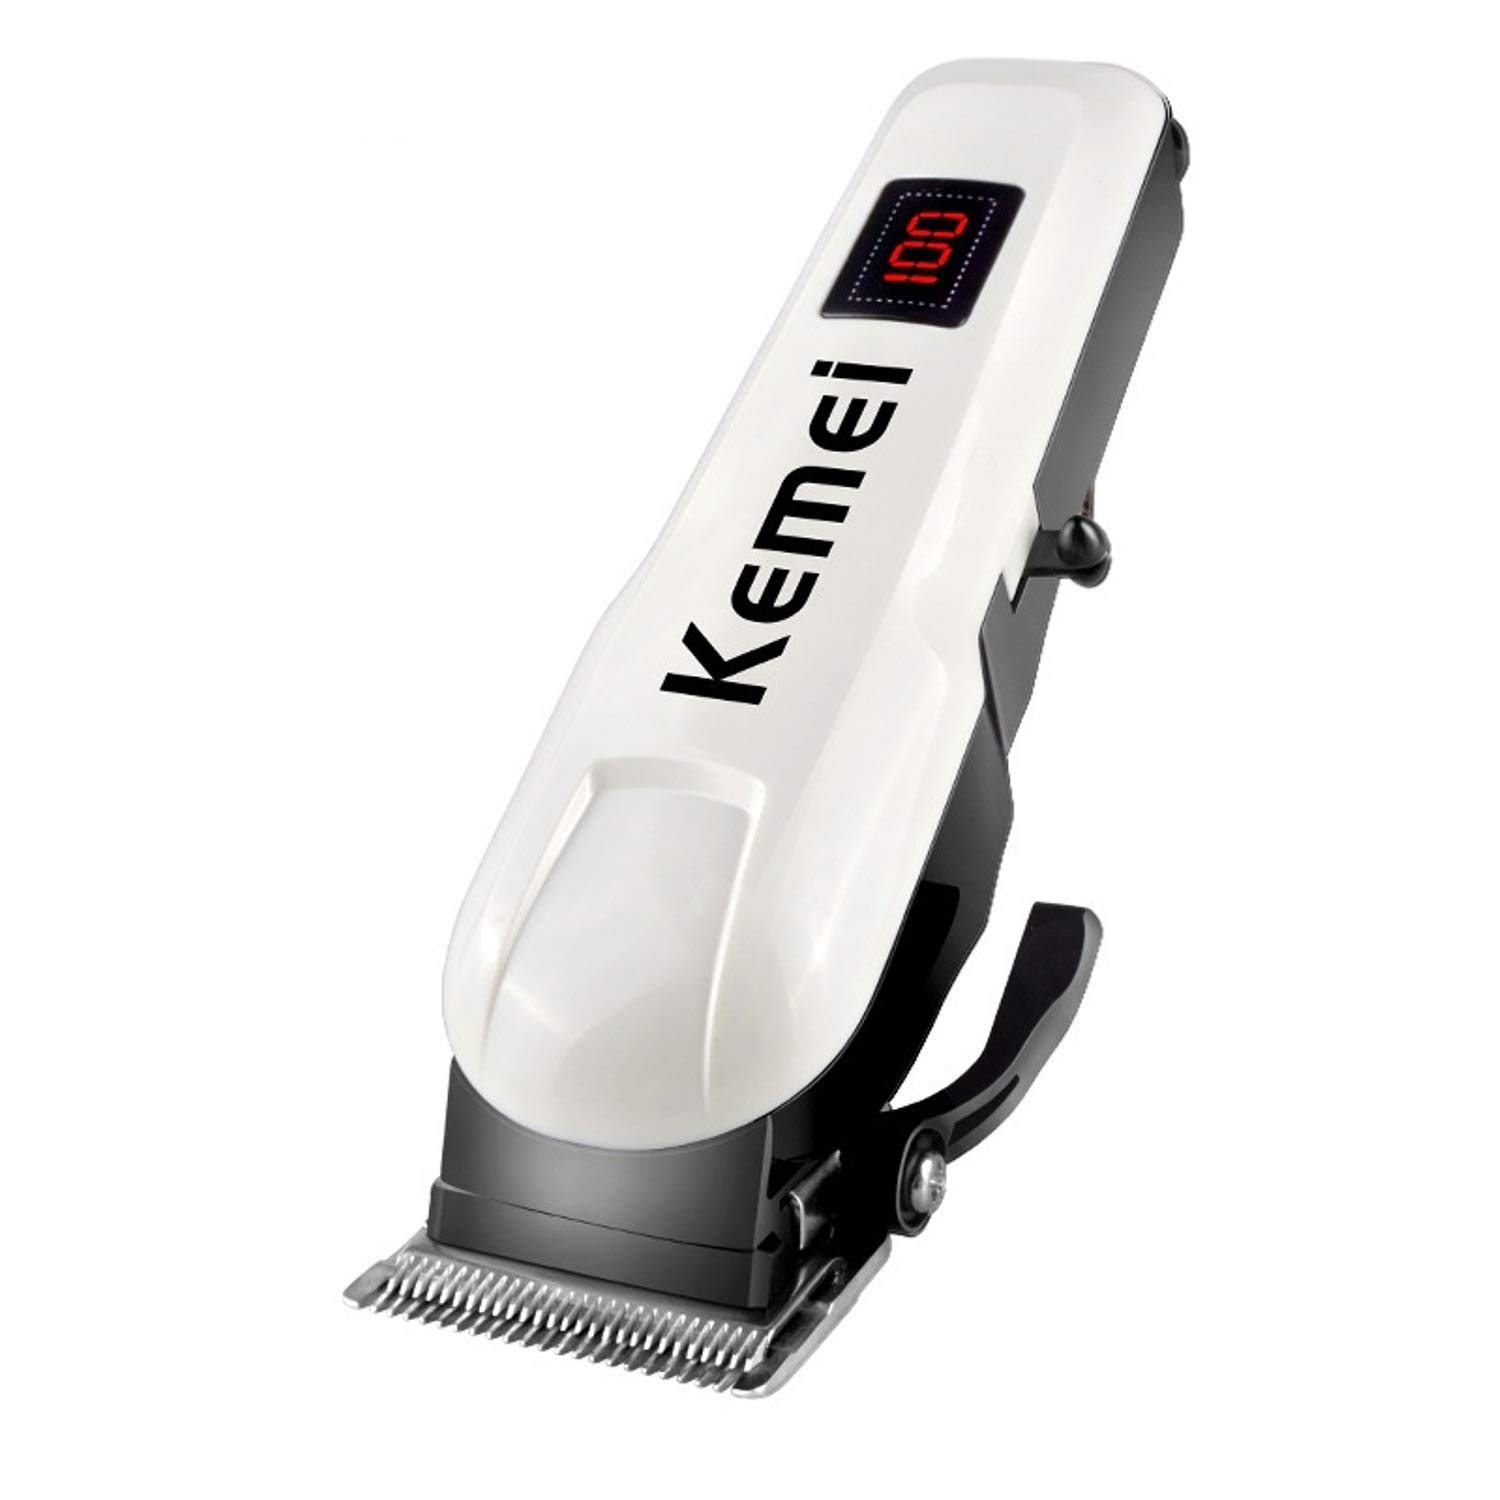 Dealsure Kemei KM 809A Professional Design Perfect Shaver and Haircut Rechargeable Beard and Moustache Hair Clipper and Trimmer